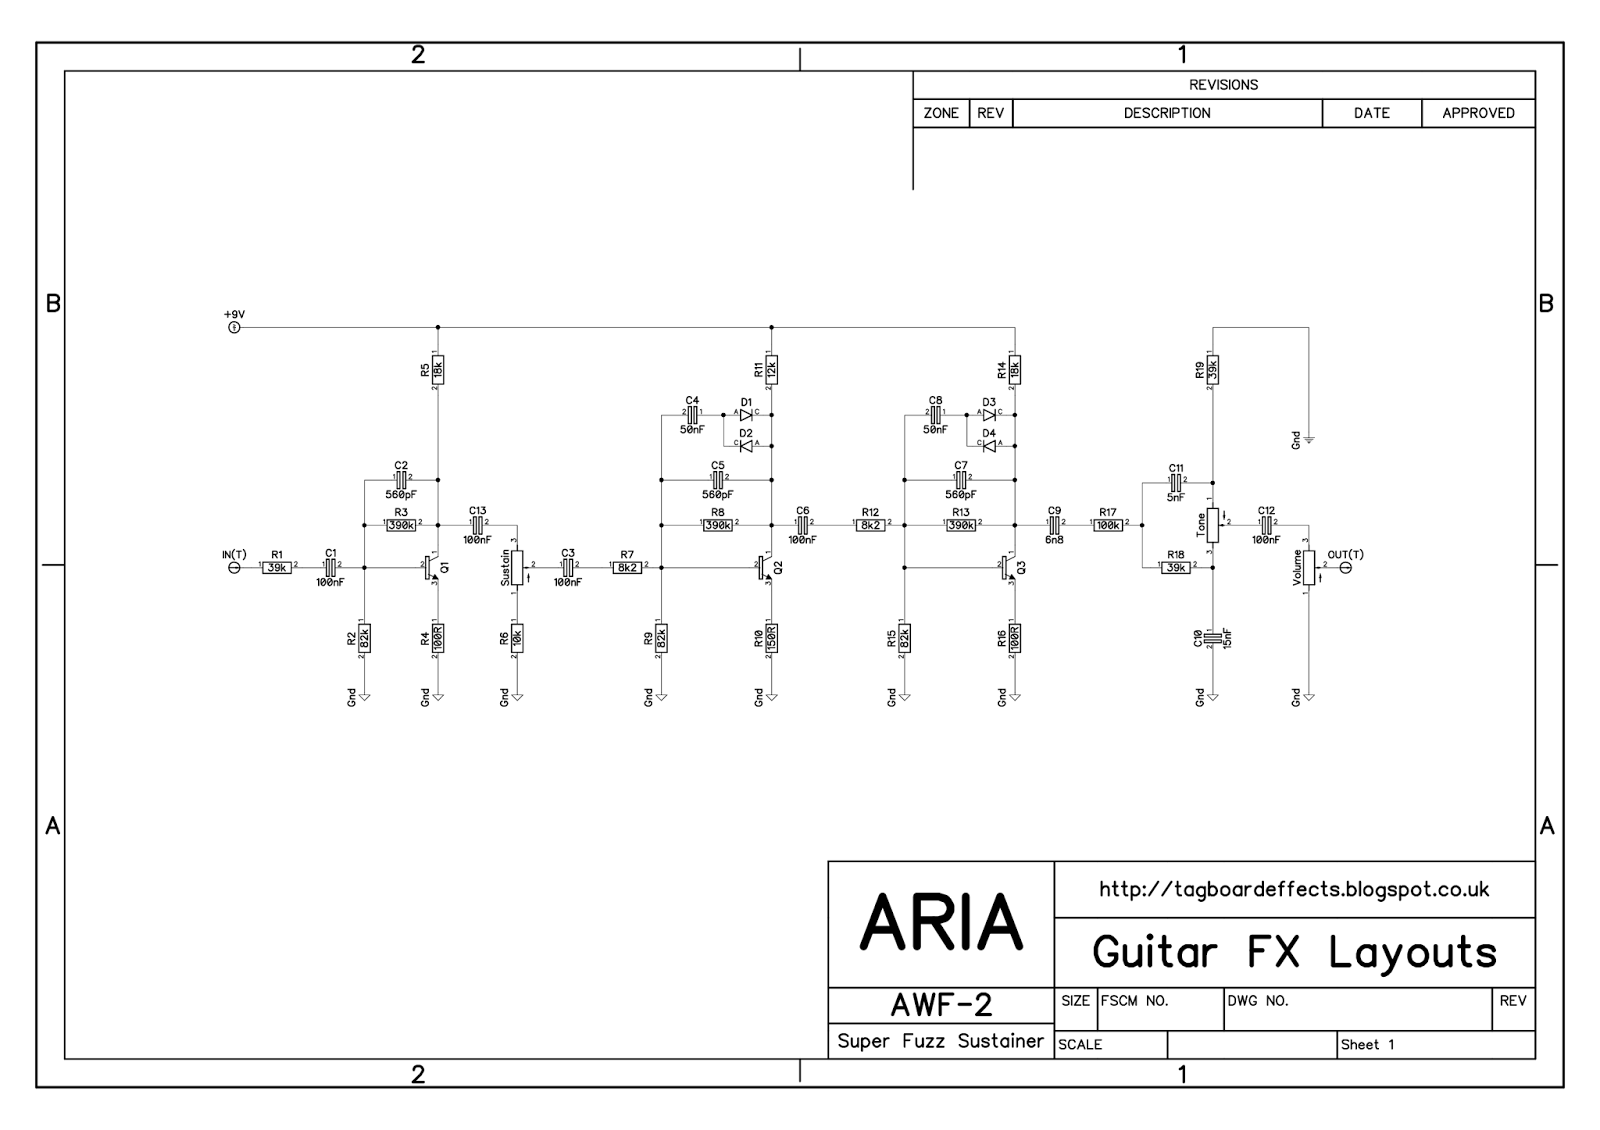 Collection Of Vero Stripboard Tagboard Layouts For 100s Of Popular Guitar Effects With Over 500 Verified Designs Guitar Guitar Effects Electronics Design